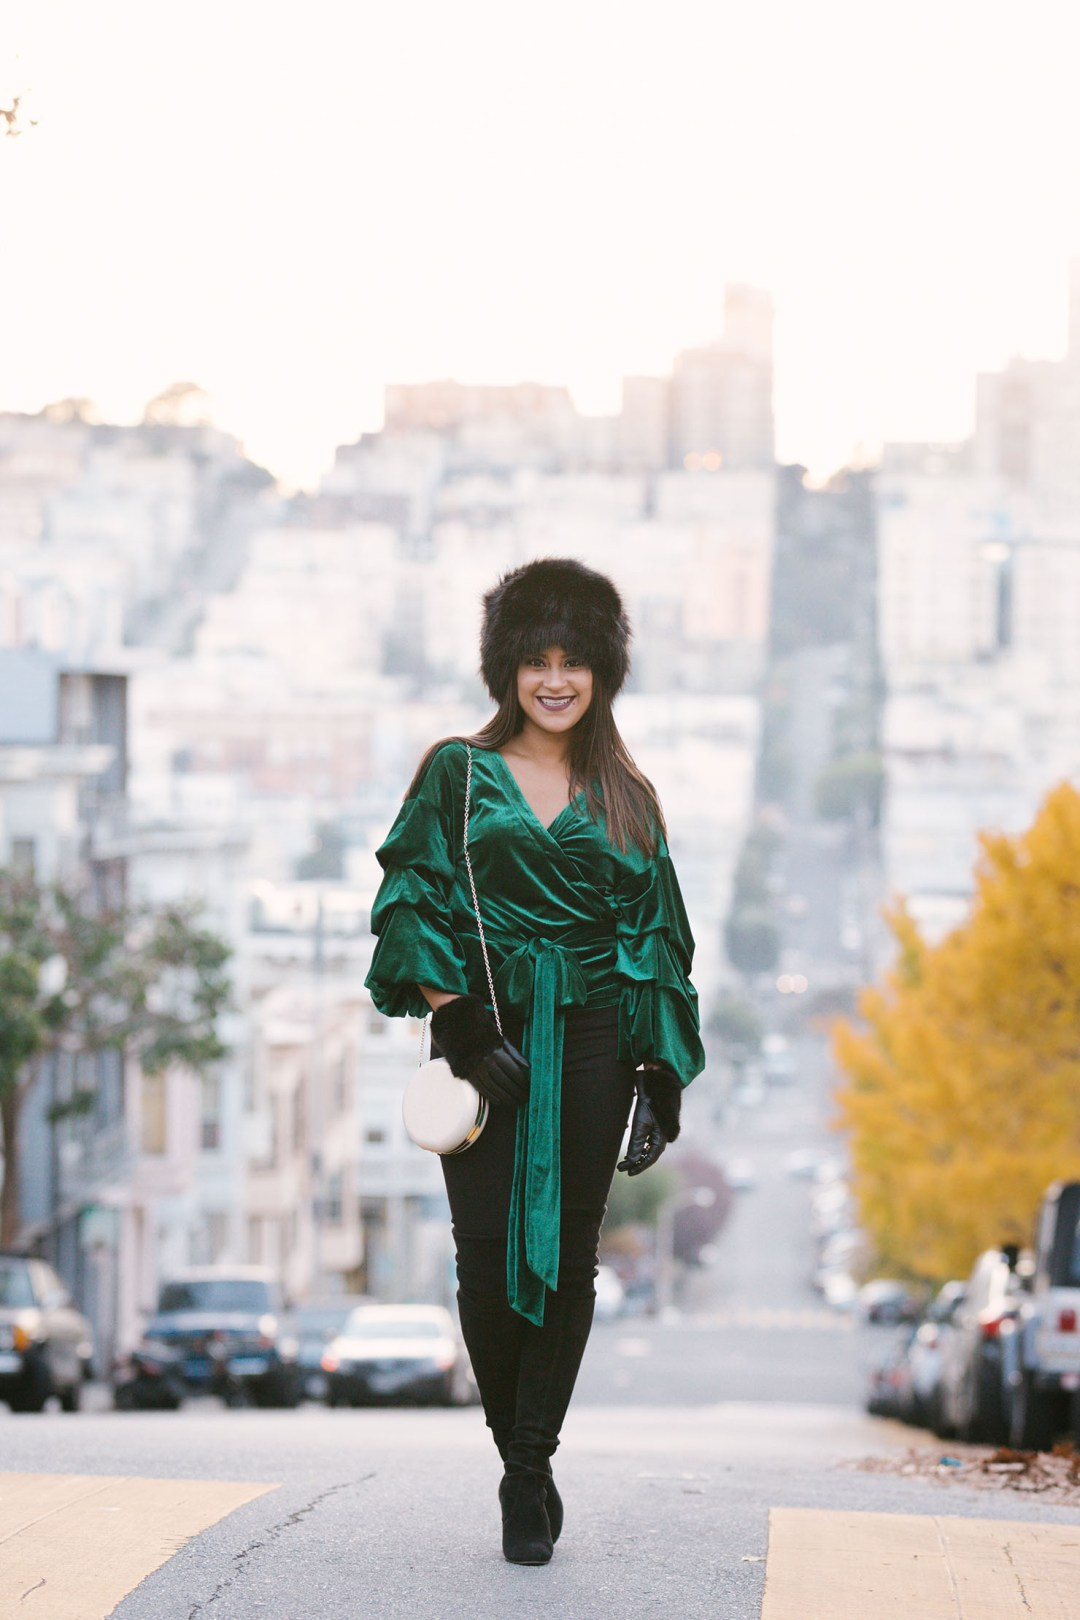 Lifestyle blogger Kelsey Kaplan of Kelsey Kaplan Fashion wearing emerald velvet top and Stuart Weitzman over the knee boots